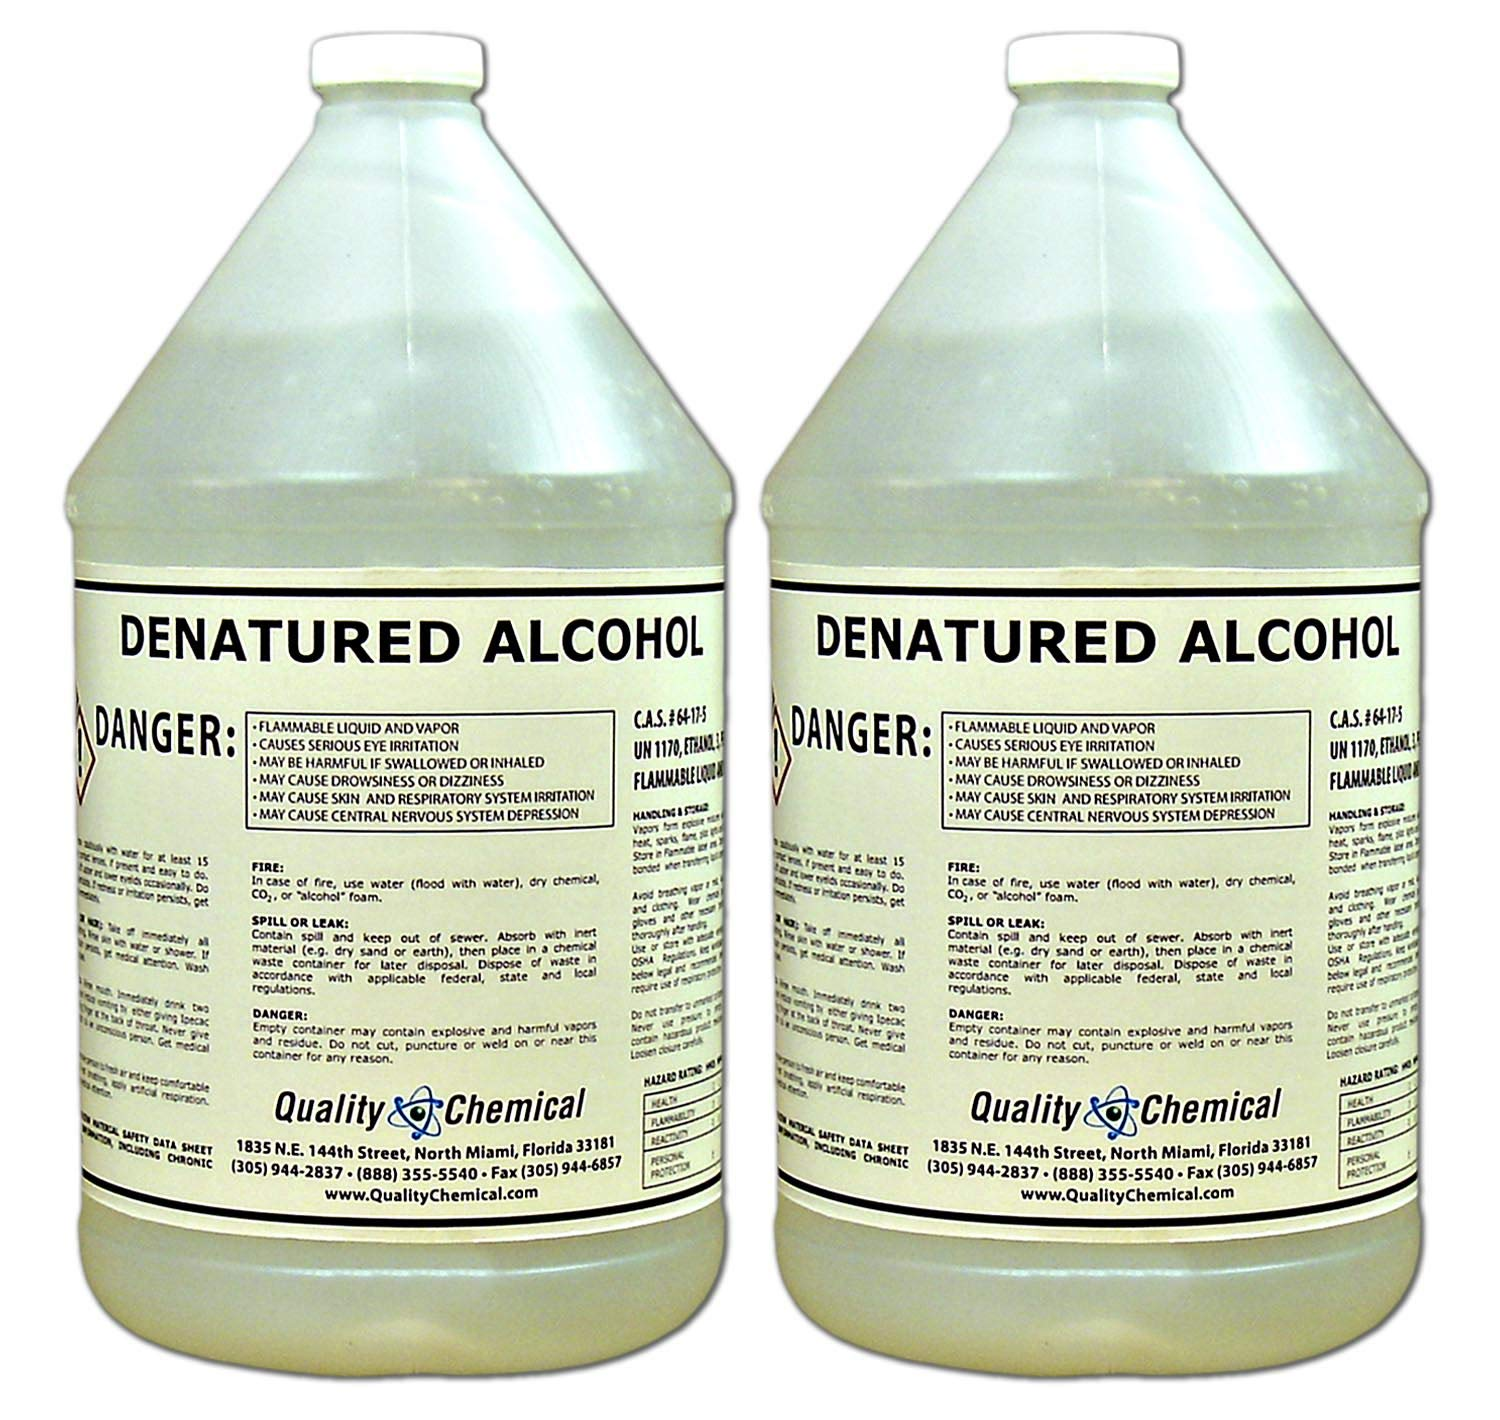 Denatured Alcohol (Ethanol)-2 gallon case by Quality Chemical